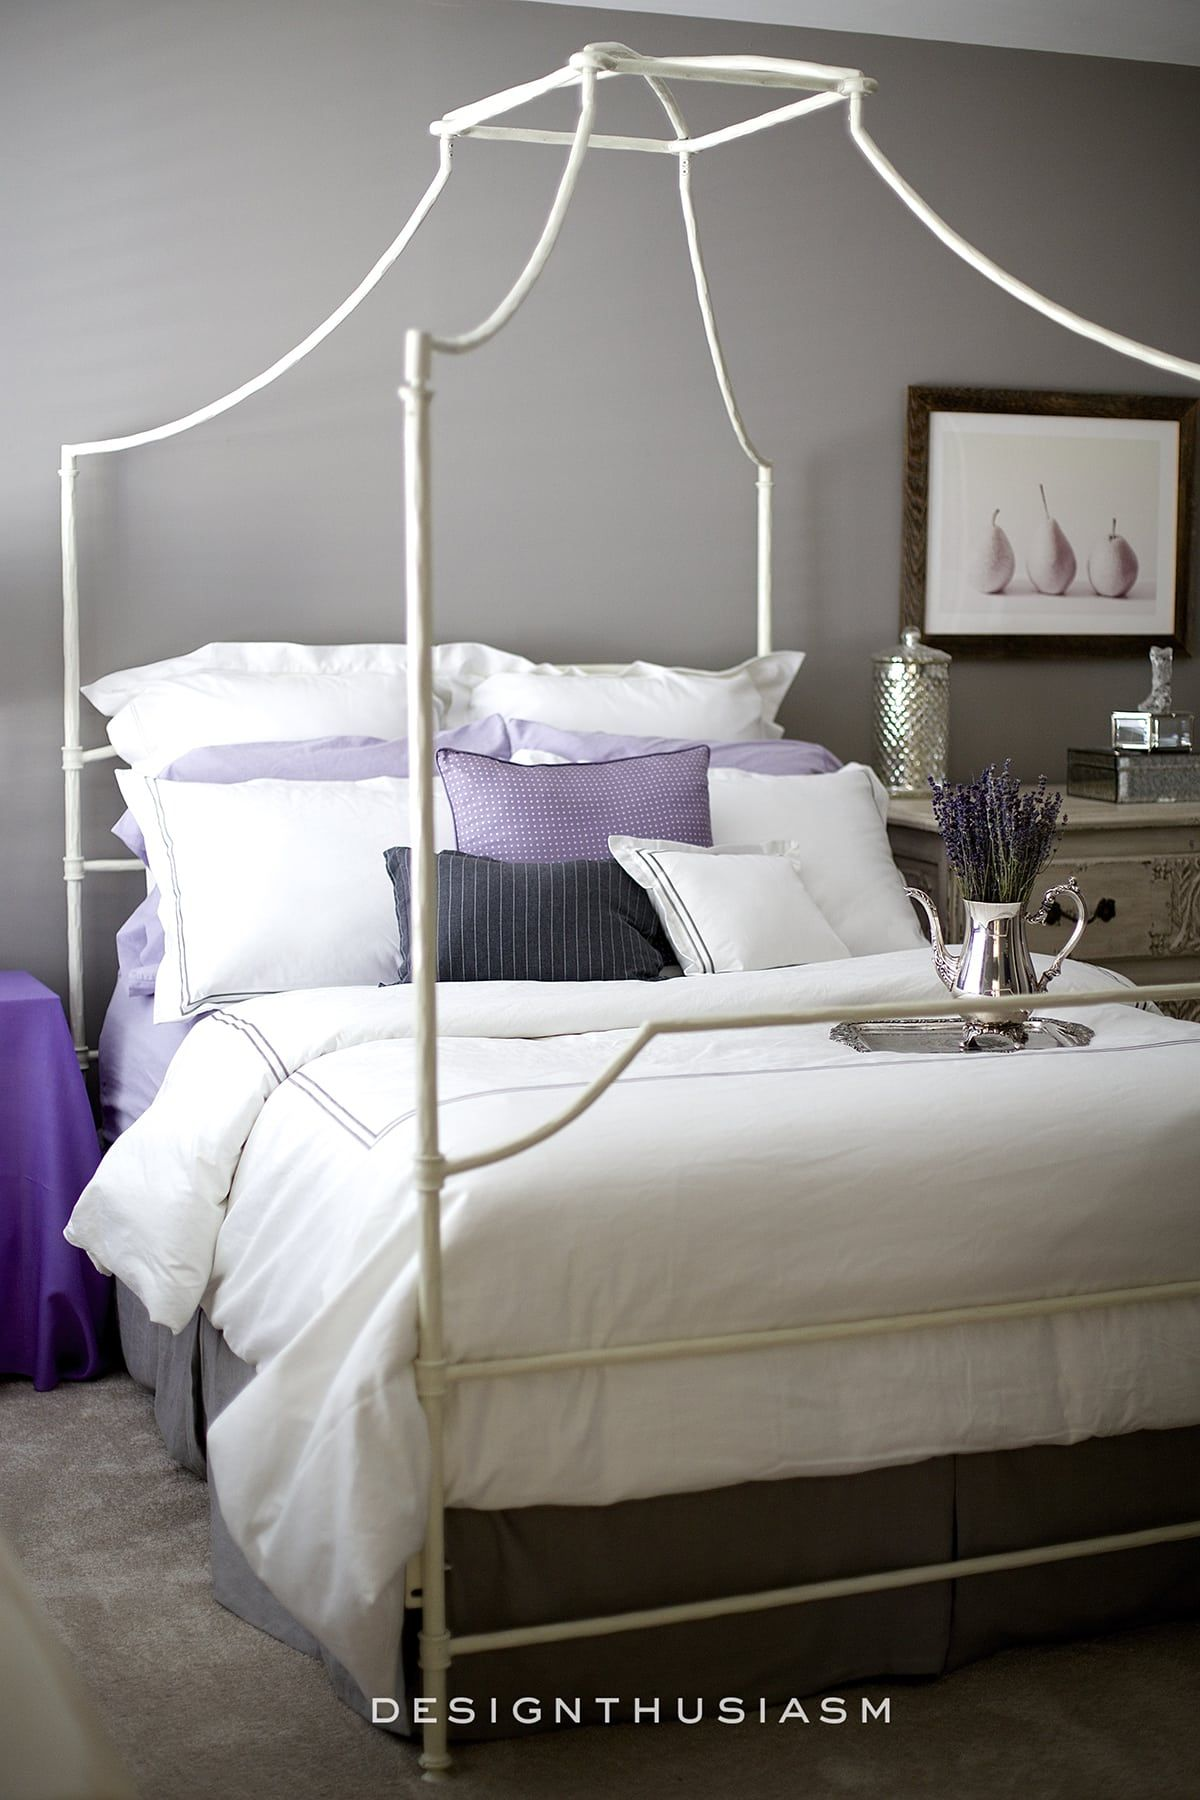 Photo of Home Improvement Ideas: Home Upgrades for the Coming Year